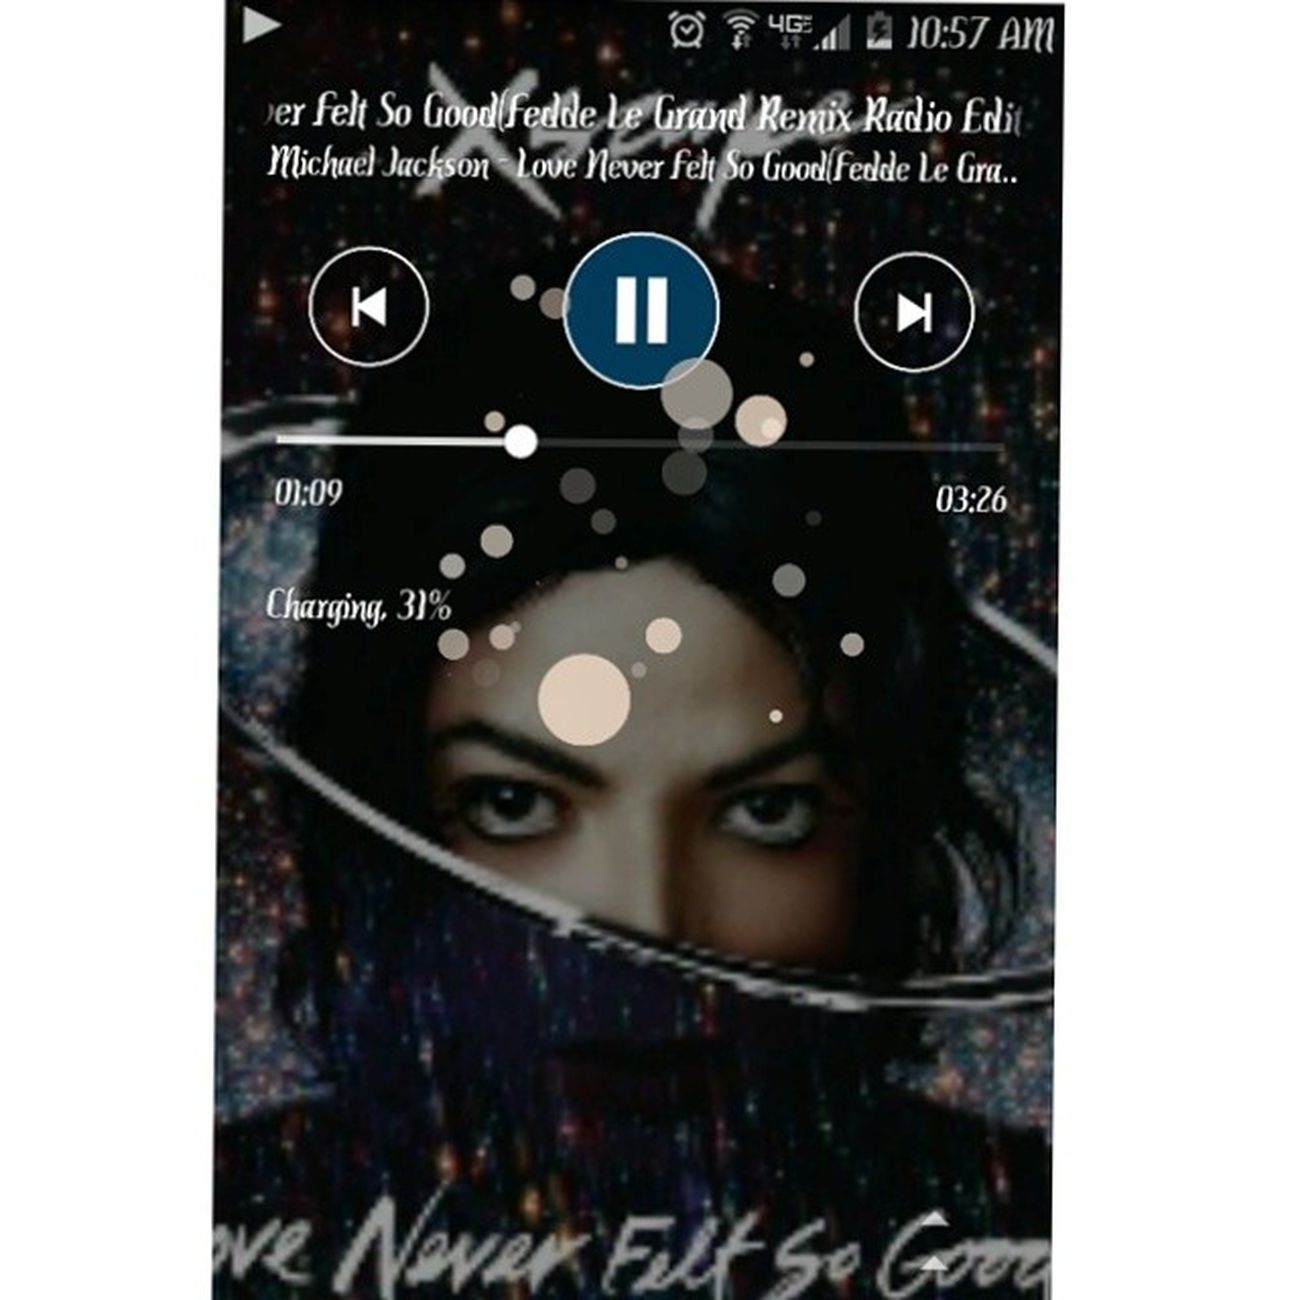 Michael Jackson kinda morning... LoveNeverFeltSoGood